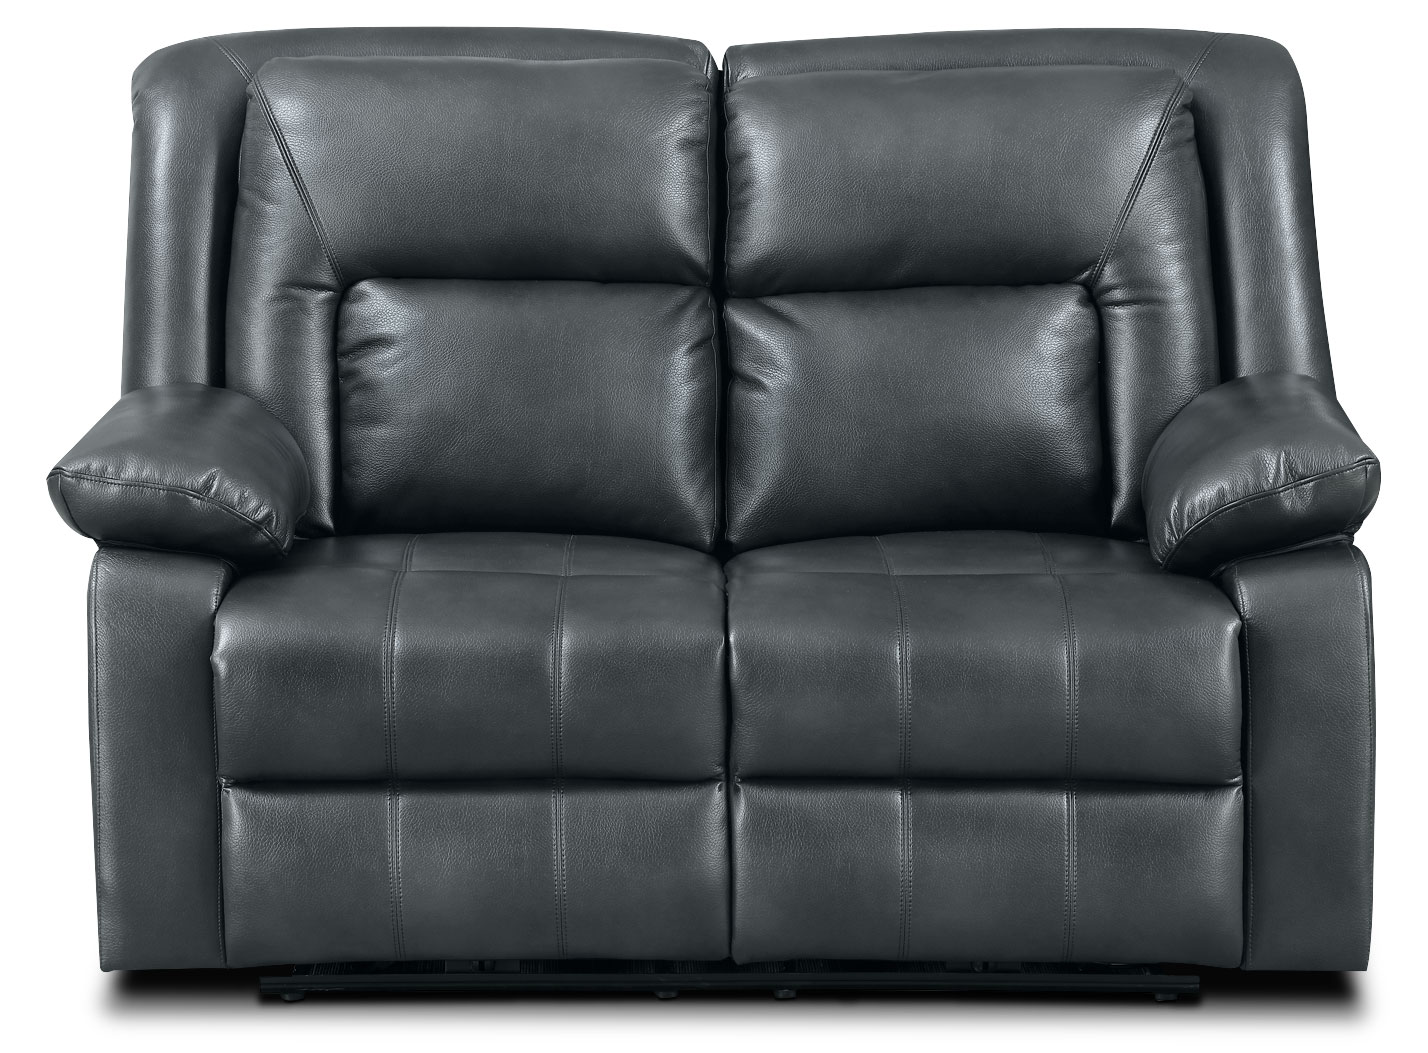 Blane Leather-Look Fabric Power Reclining Loveseat – Graphite